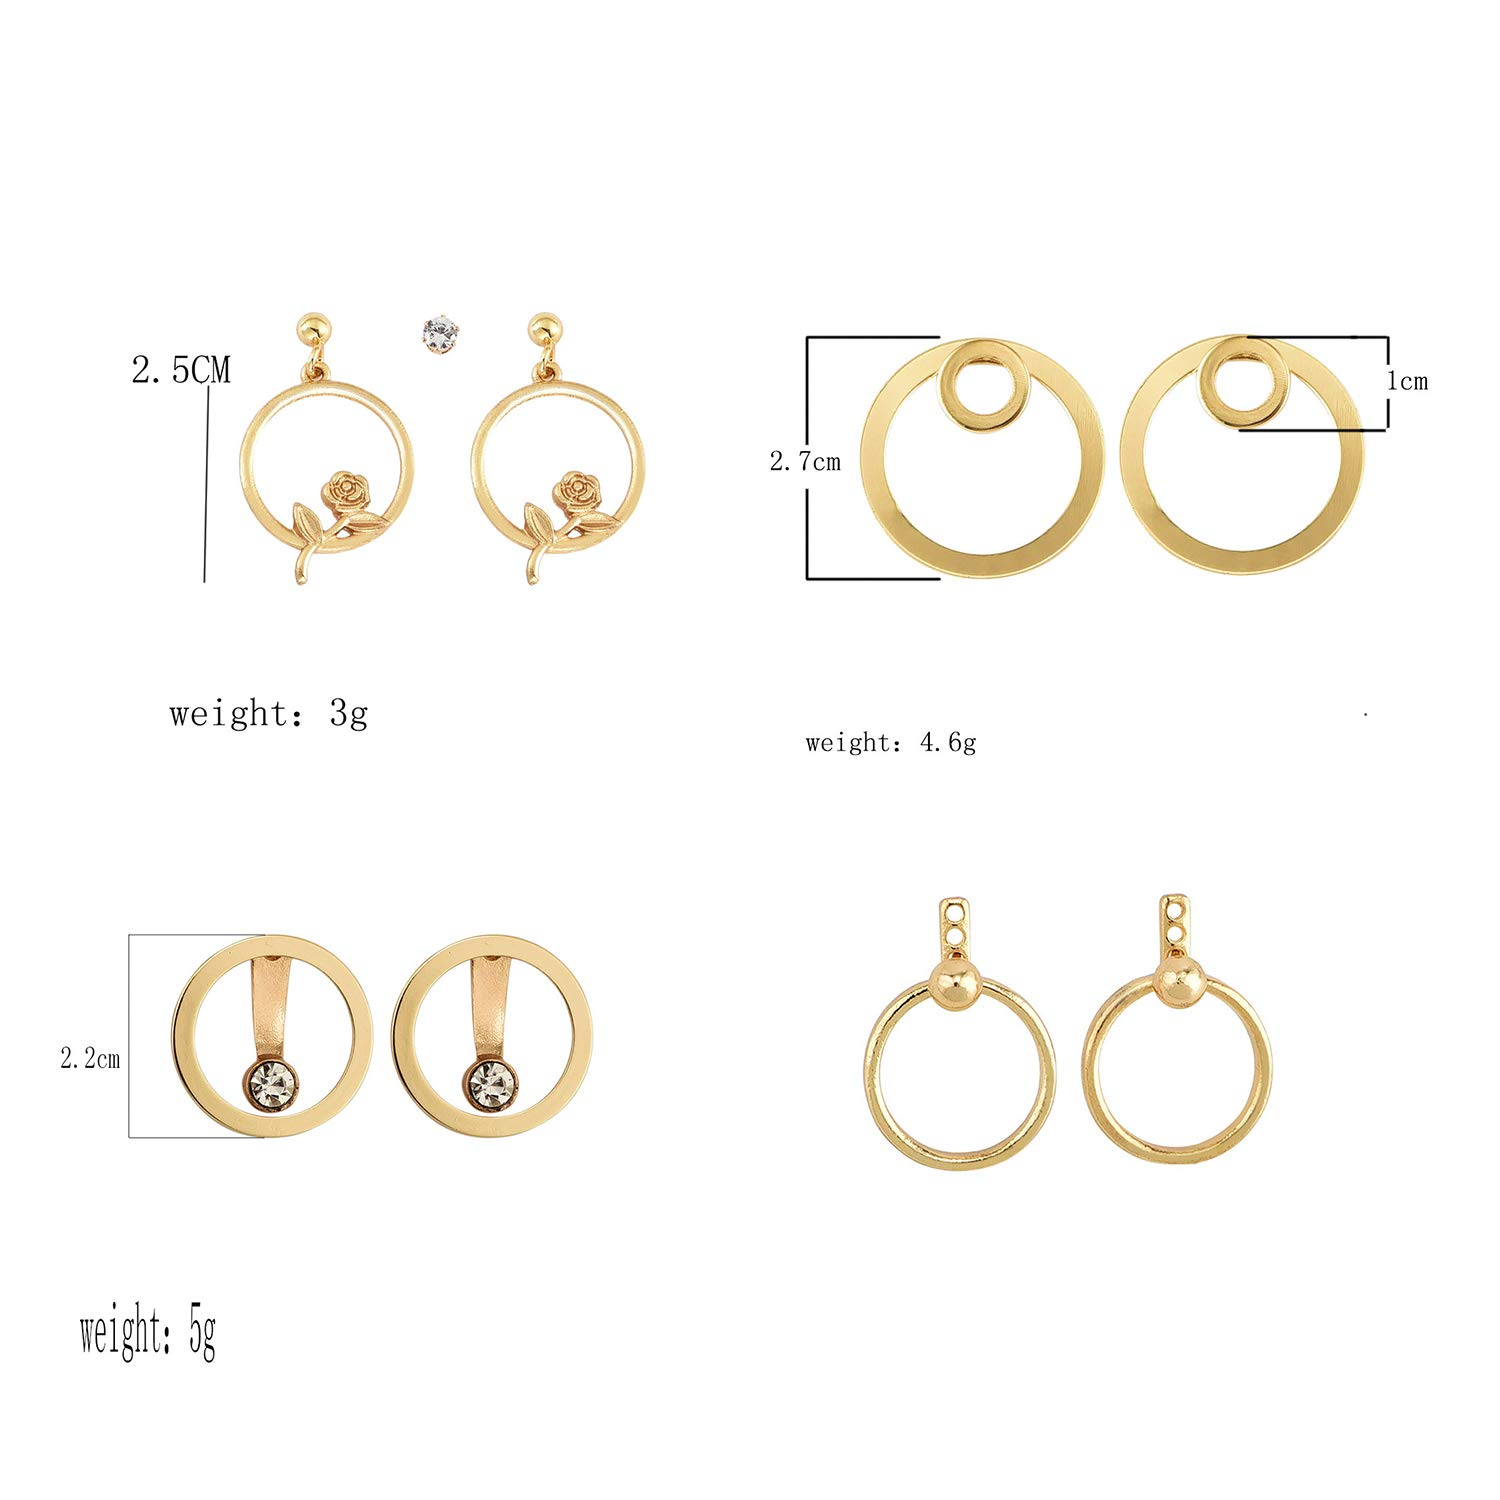 VZBarn 9 Pairs Multi-Color Disc Round Stud Earrings Dainty Circle Earrings Studs for Women